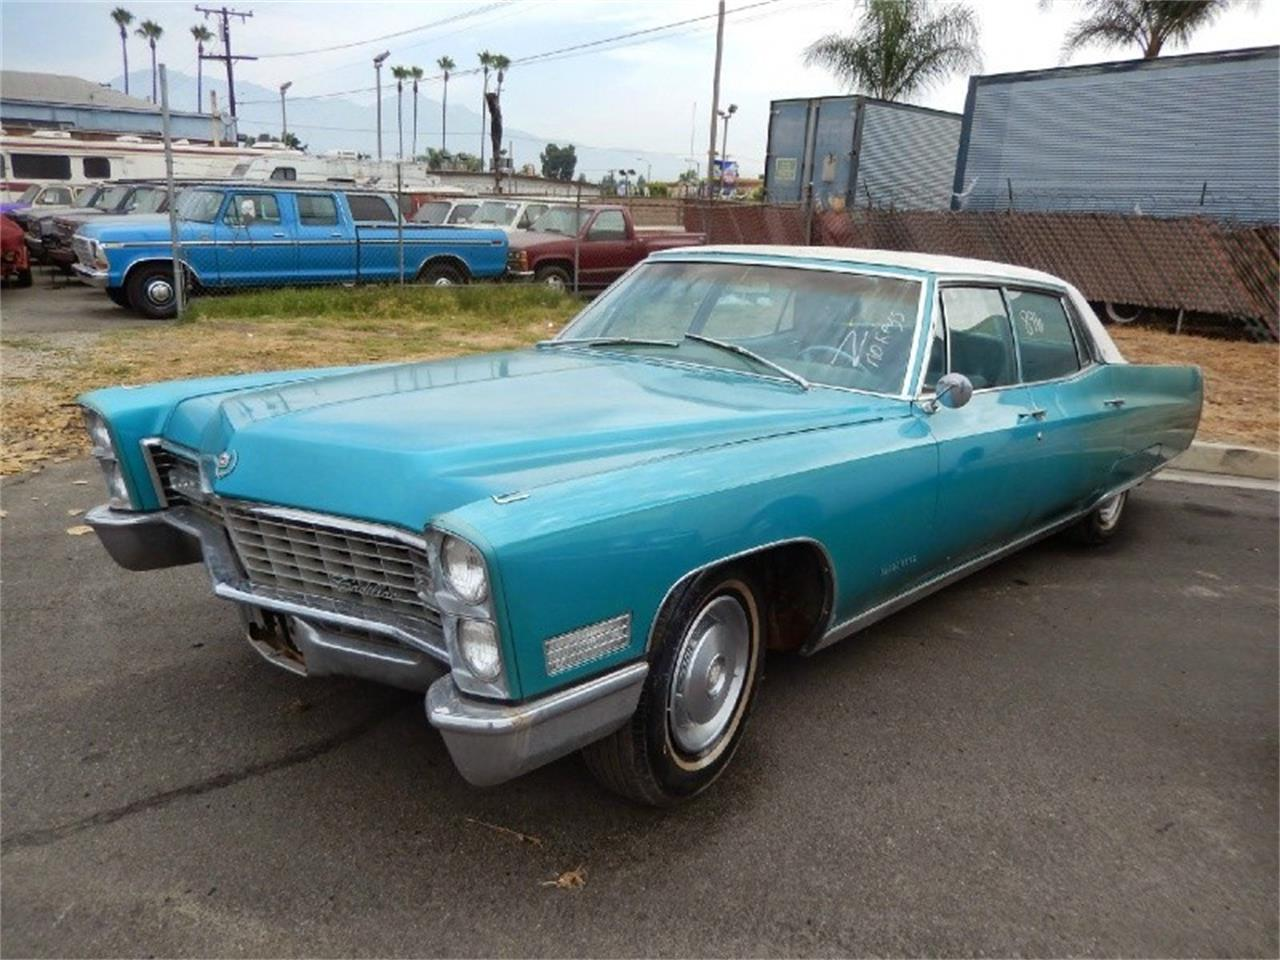 For Sale: 1967 Cadillac Fleetwood in Pahrump, Nevada